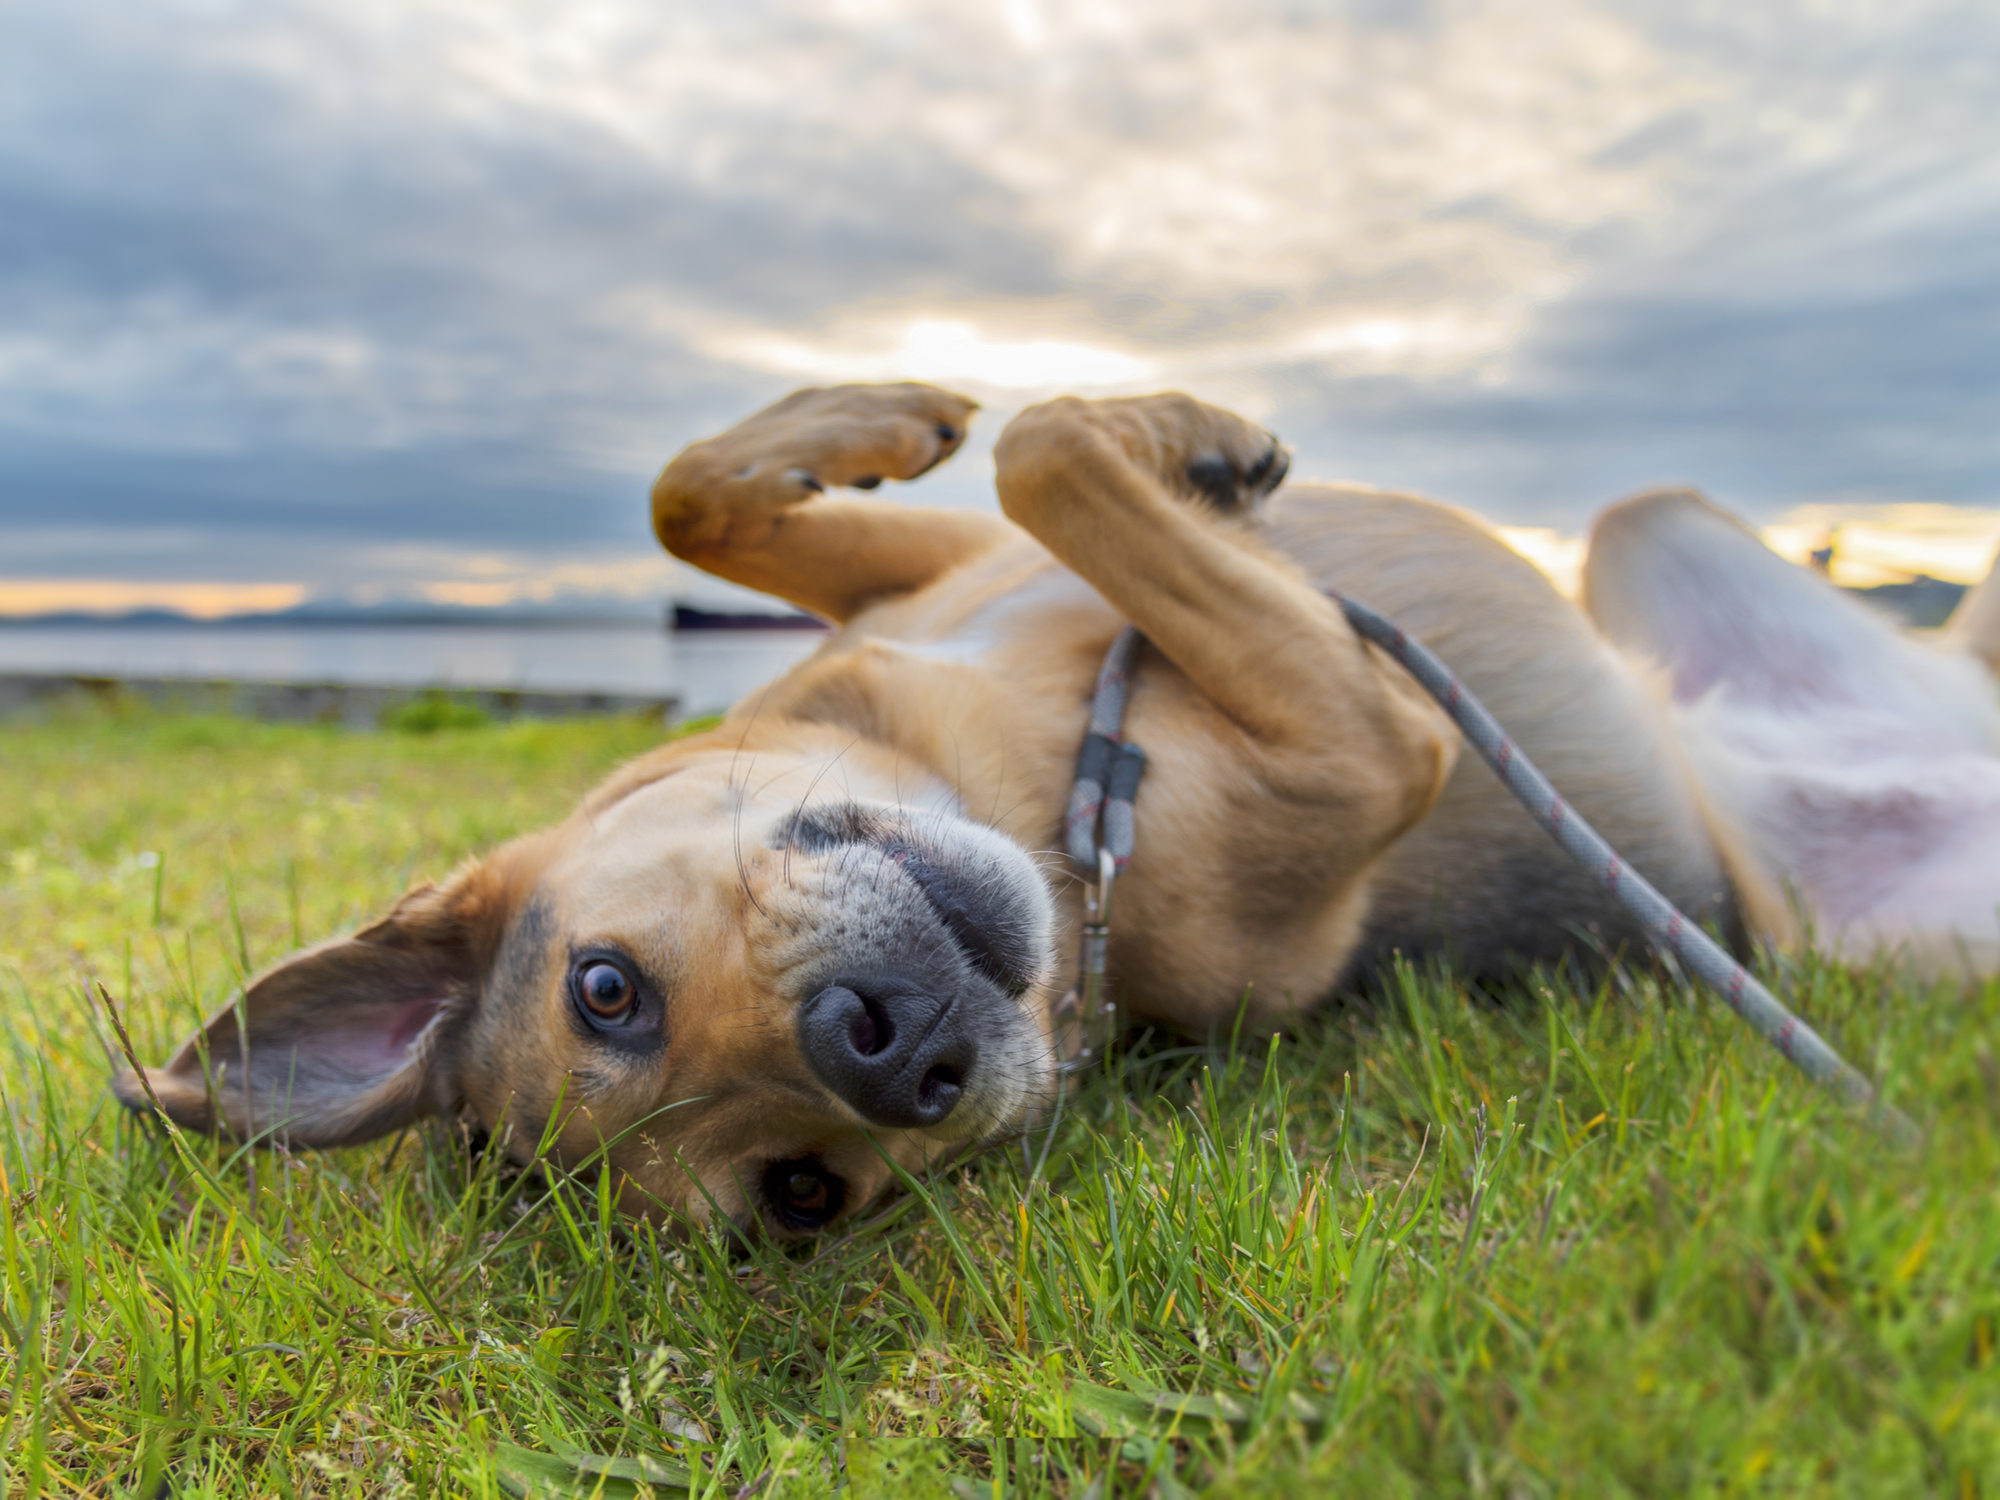 What infections can be caused by fleas and ticks?